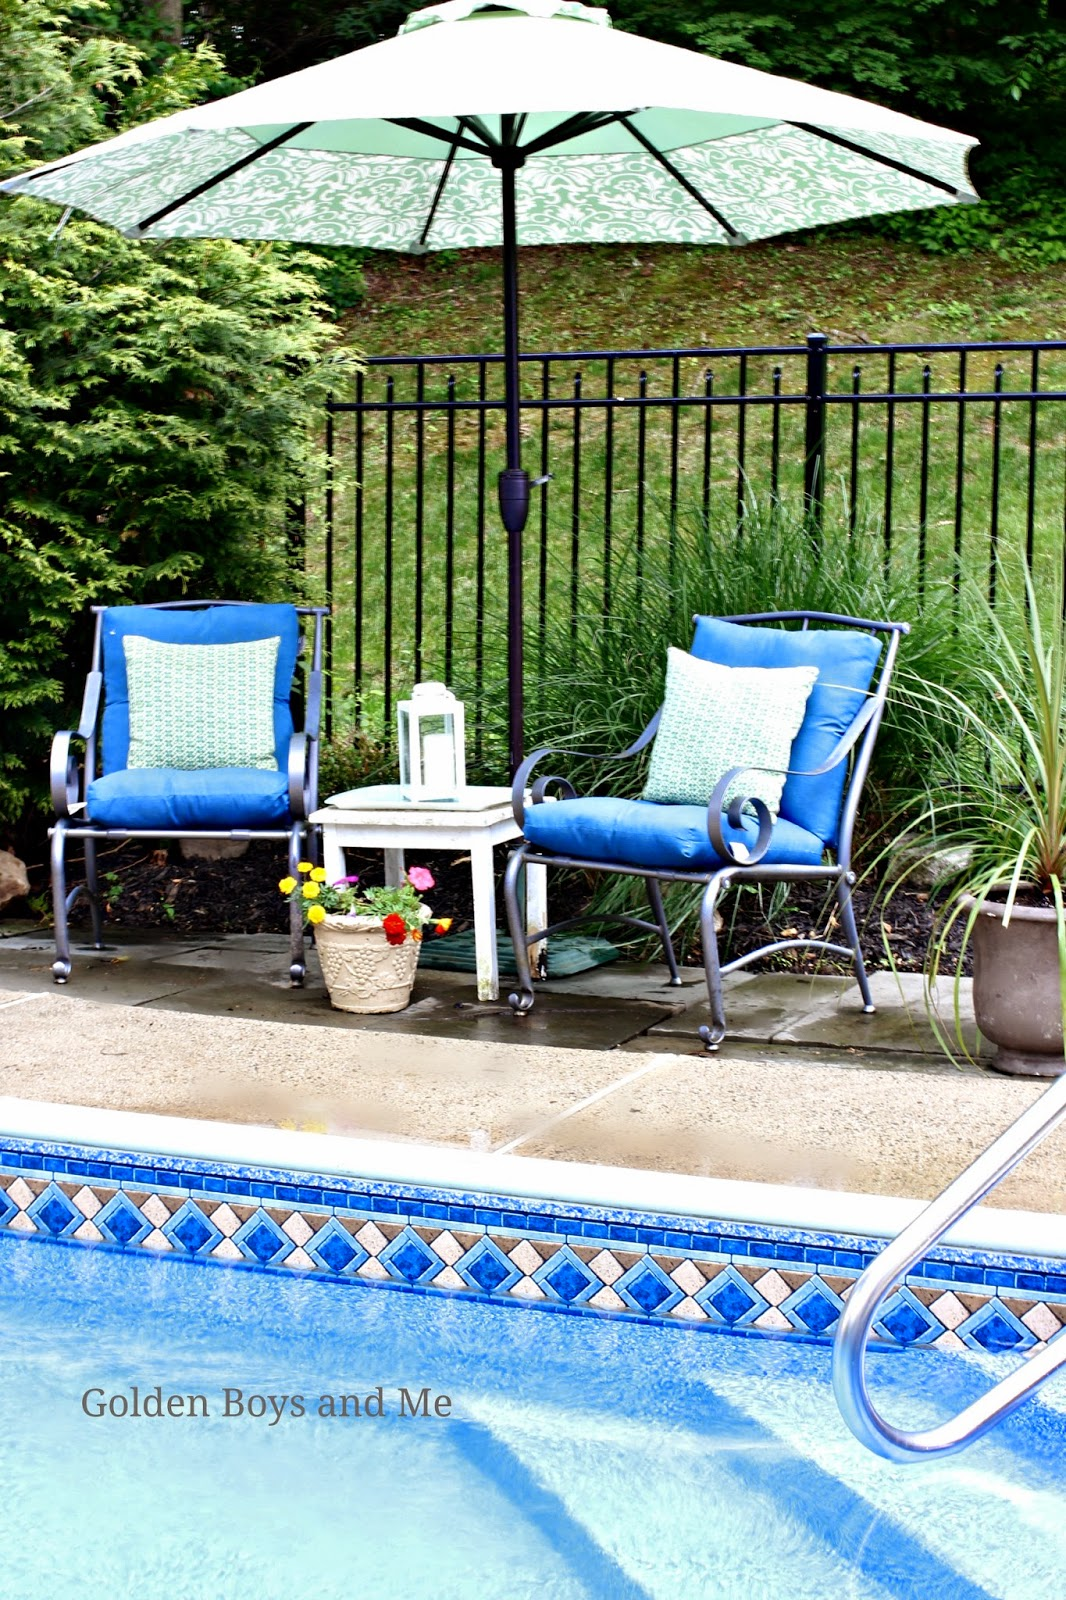 Golden Boys and Me: Our Pool and Patio